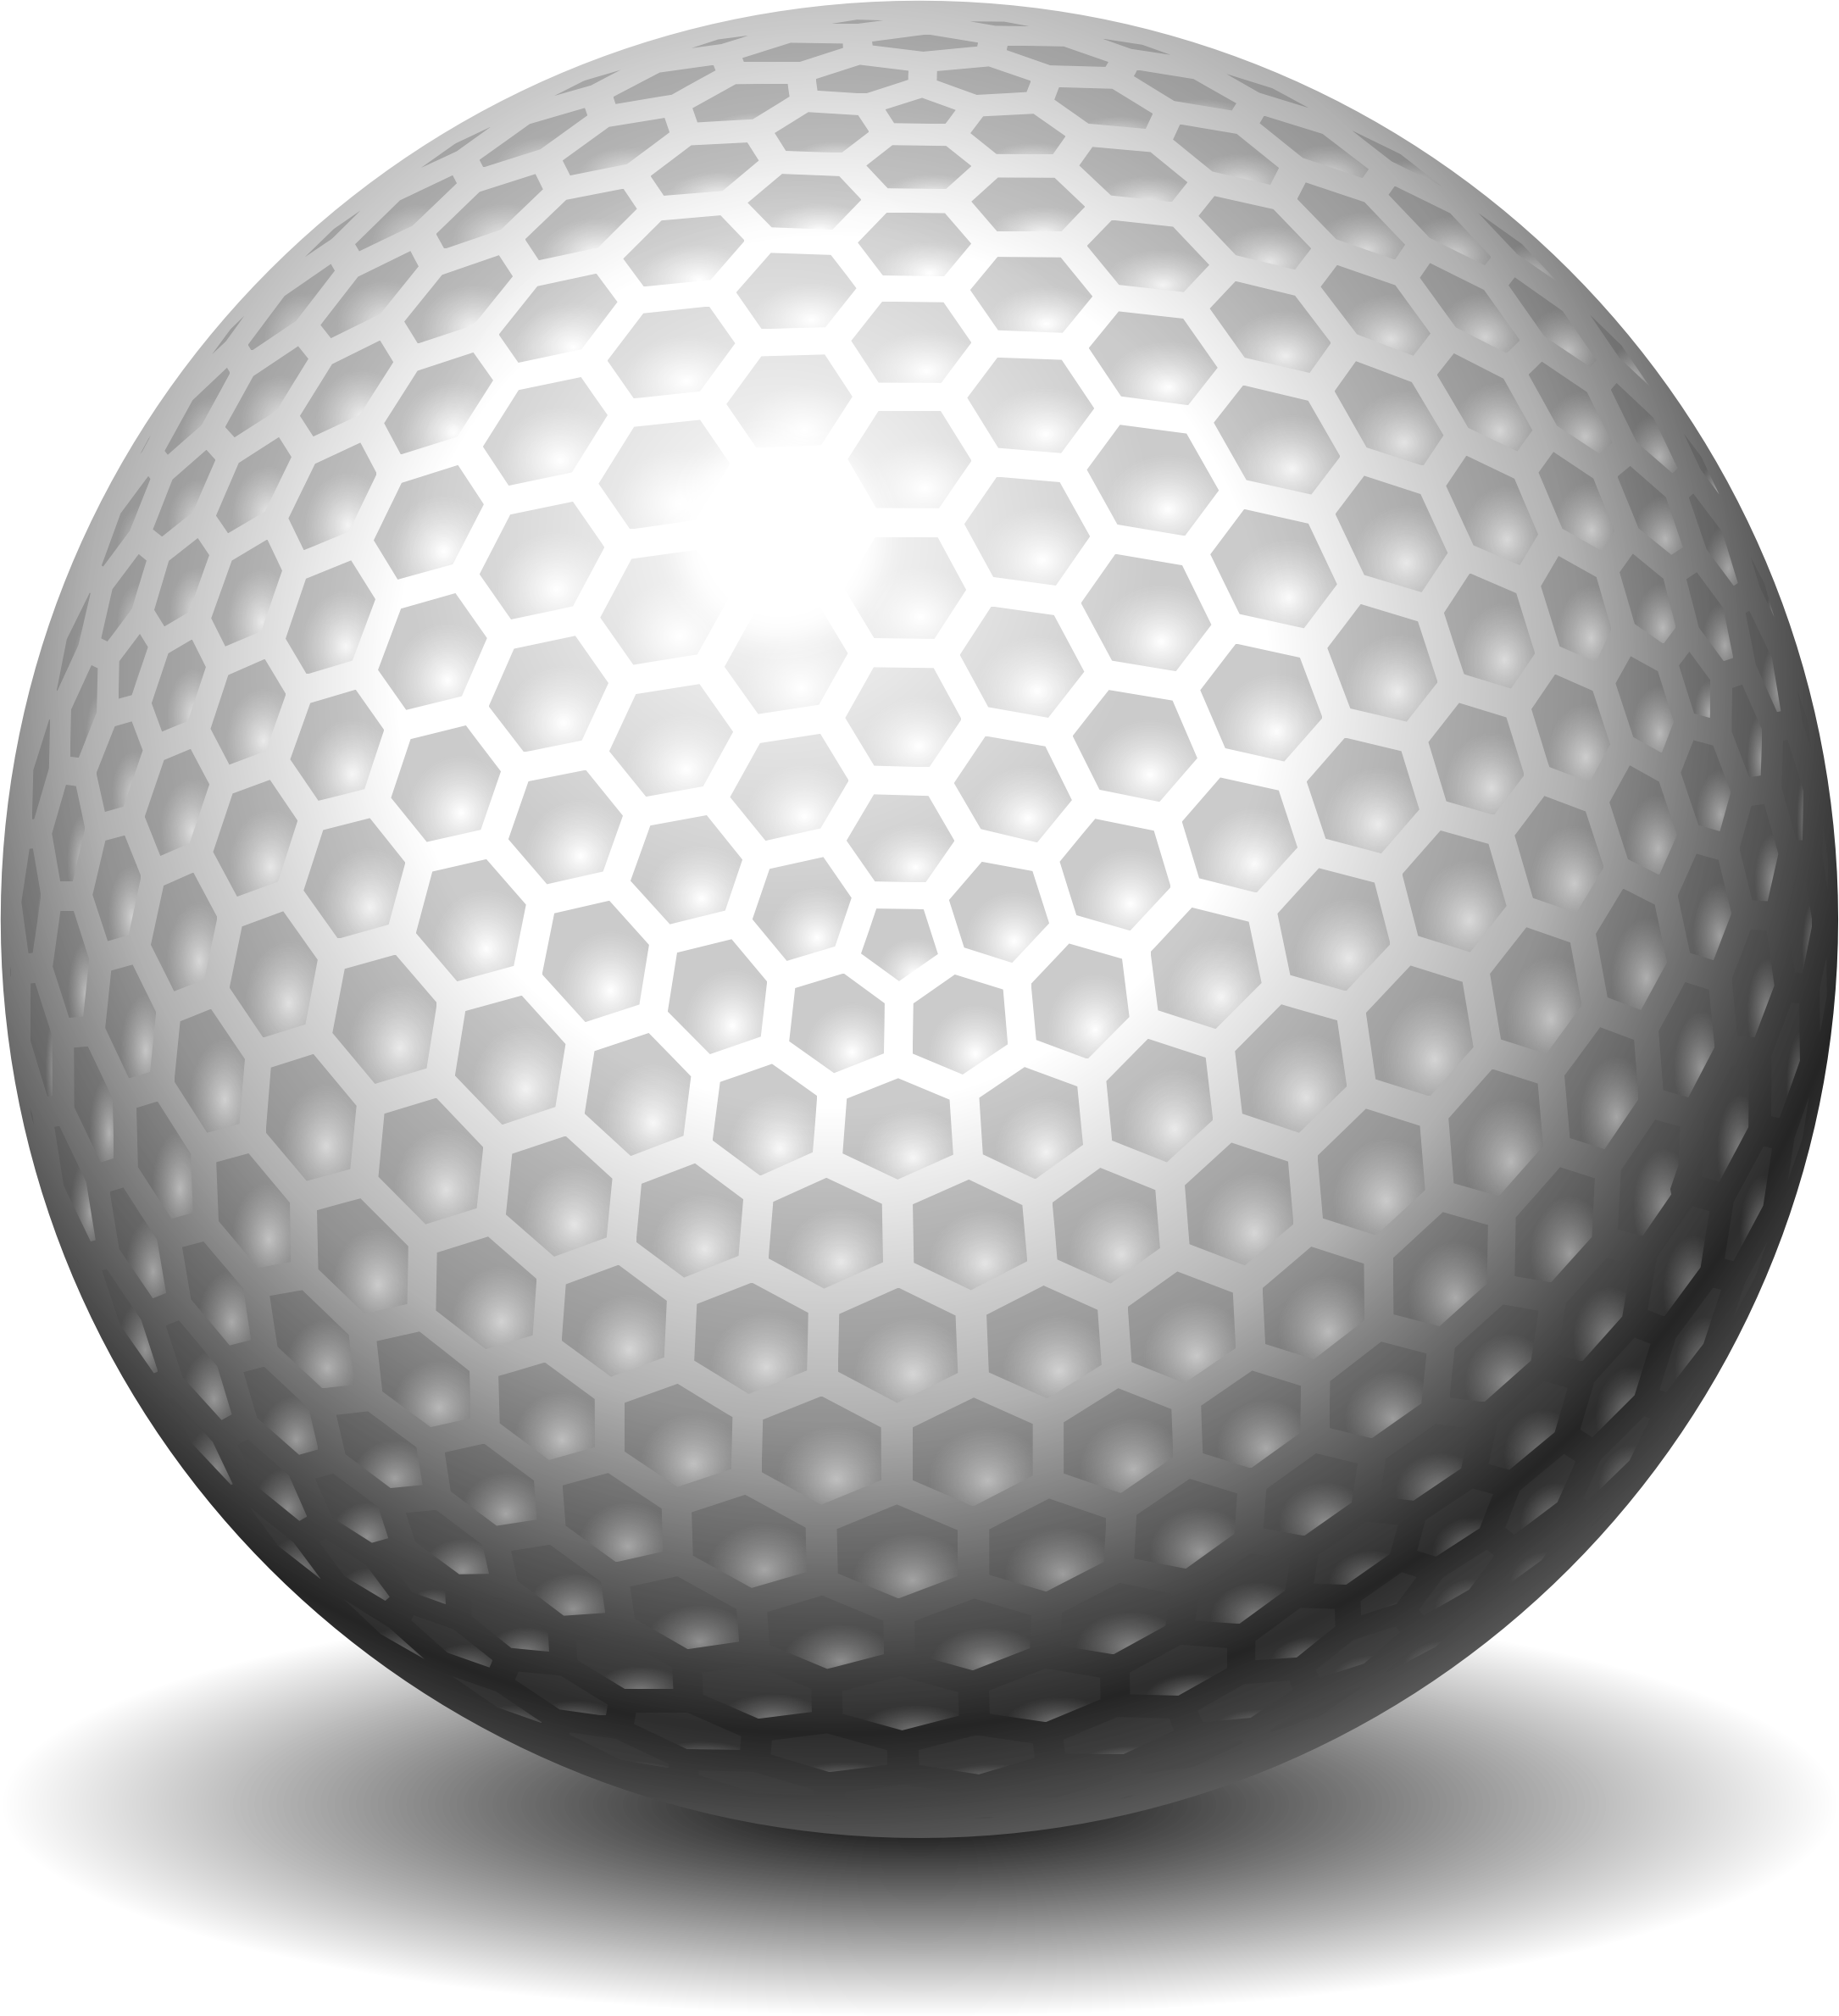 Clipart grass golf ball.  collection of free